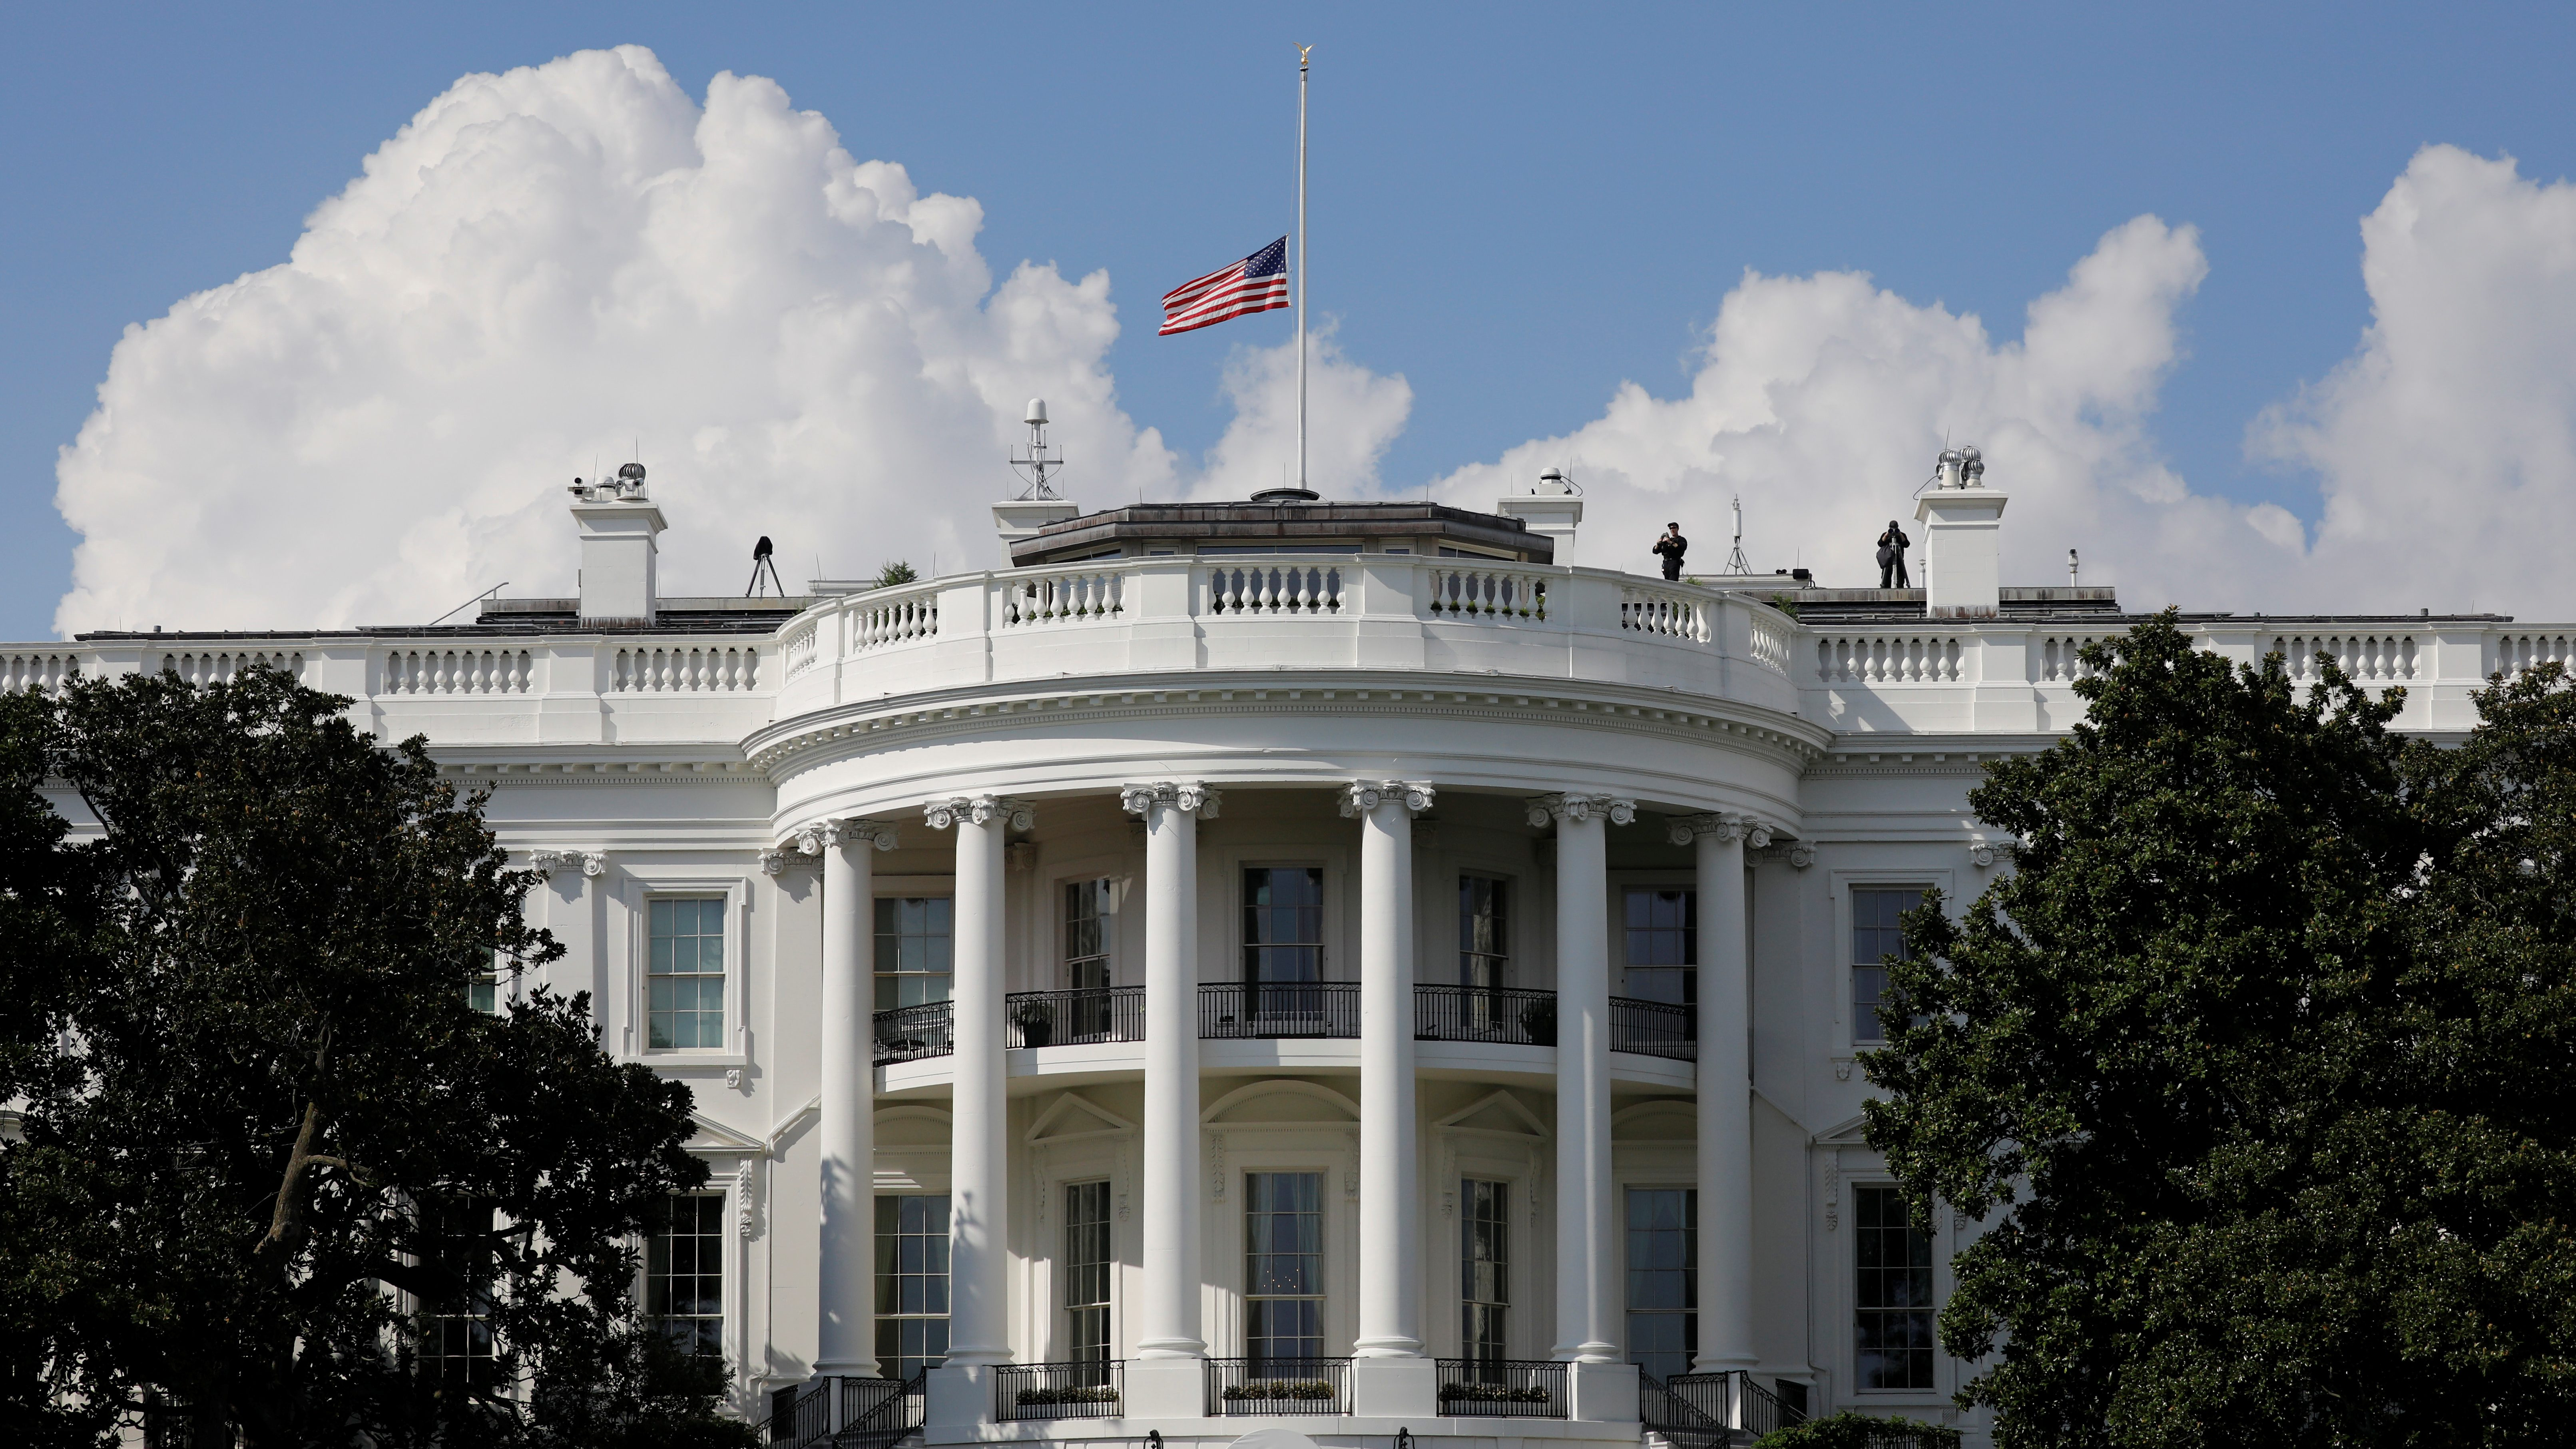 White House flag at half-mast.